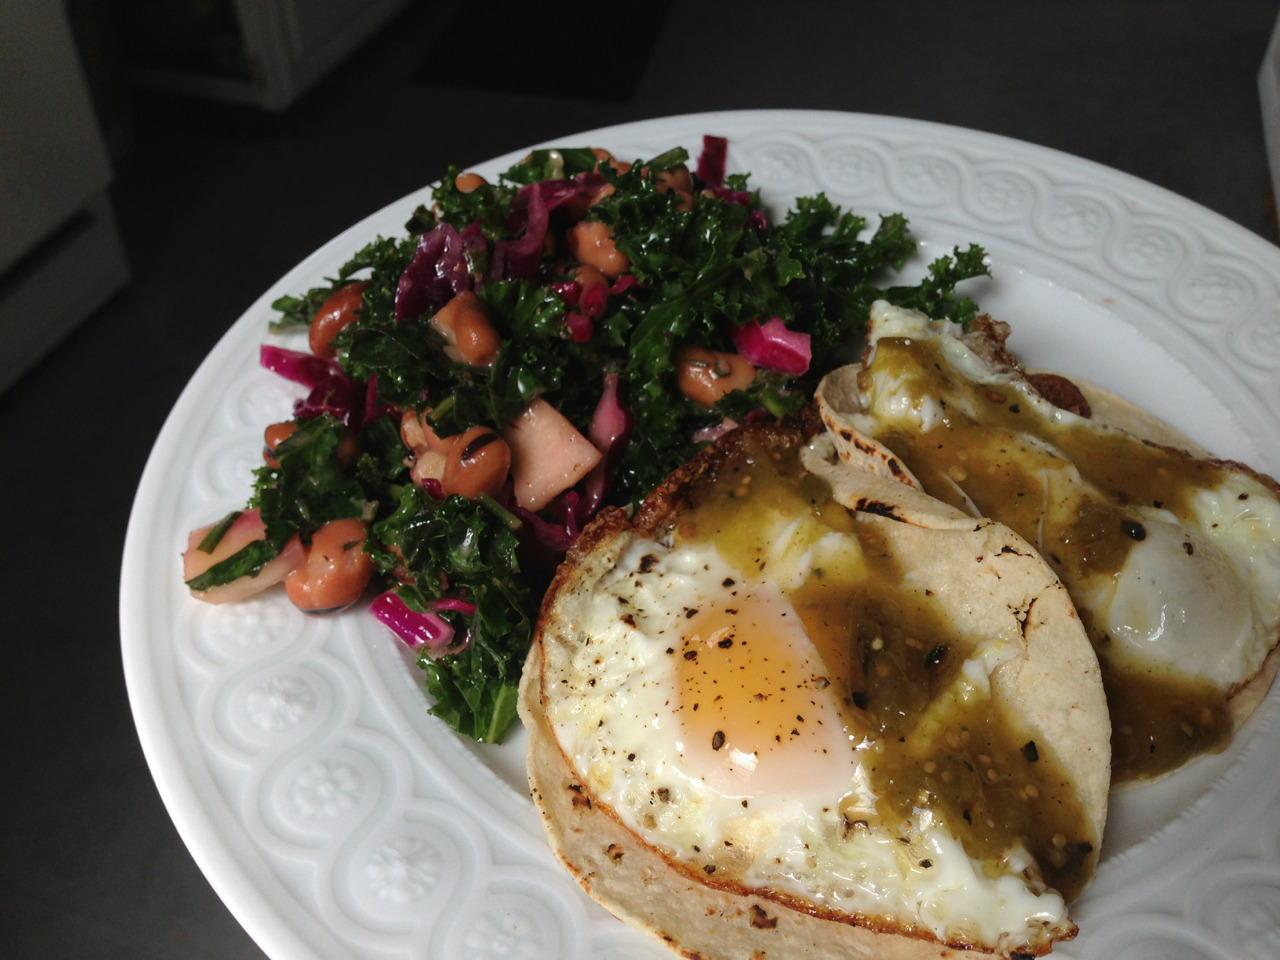 Fried egg tacos, roasted tomatillo salsa, kale and braised fava bean salad